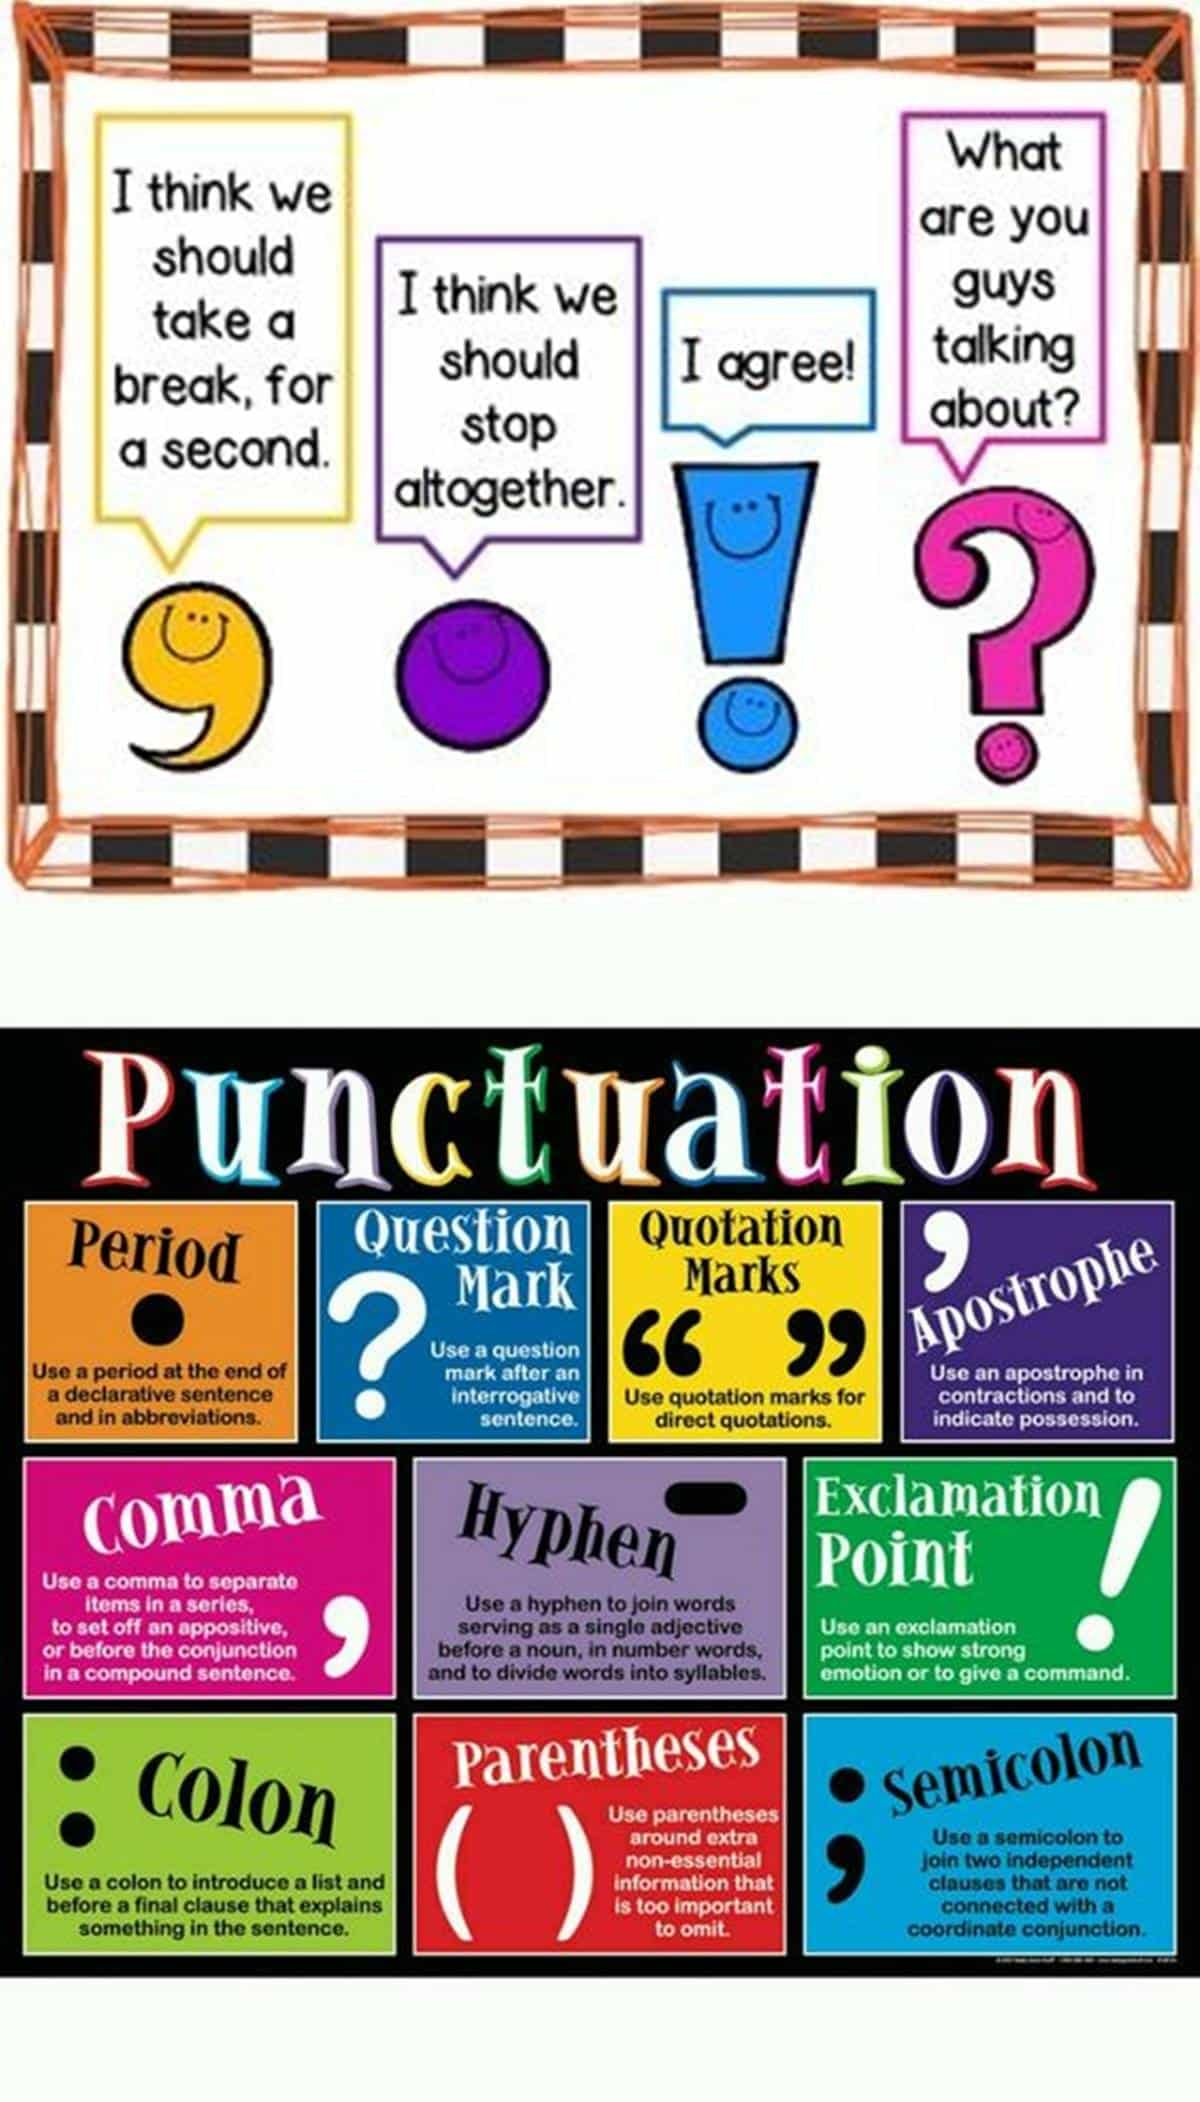 Punctuation in English